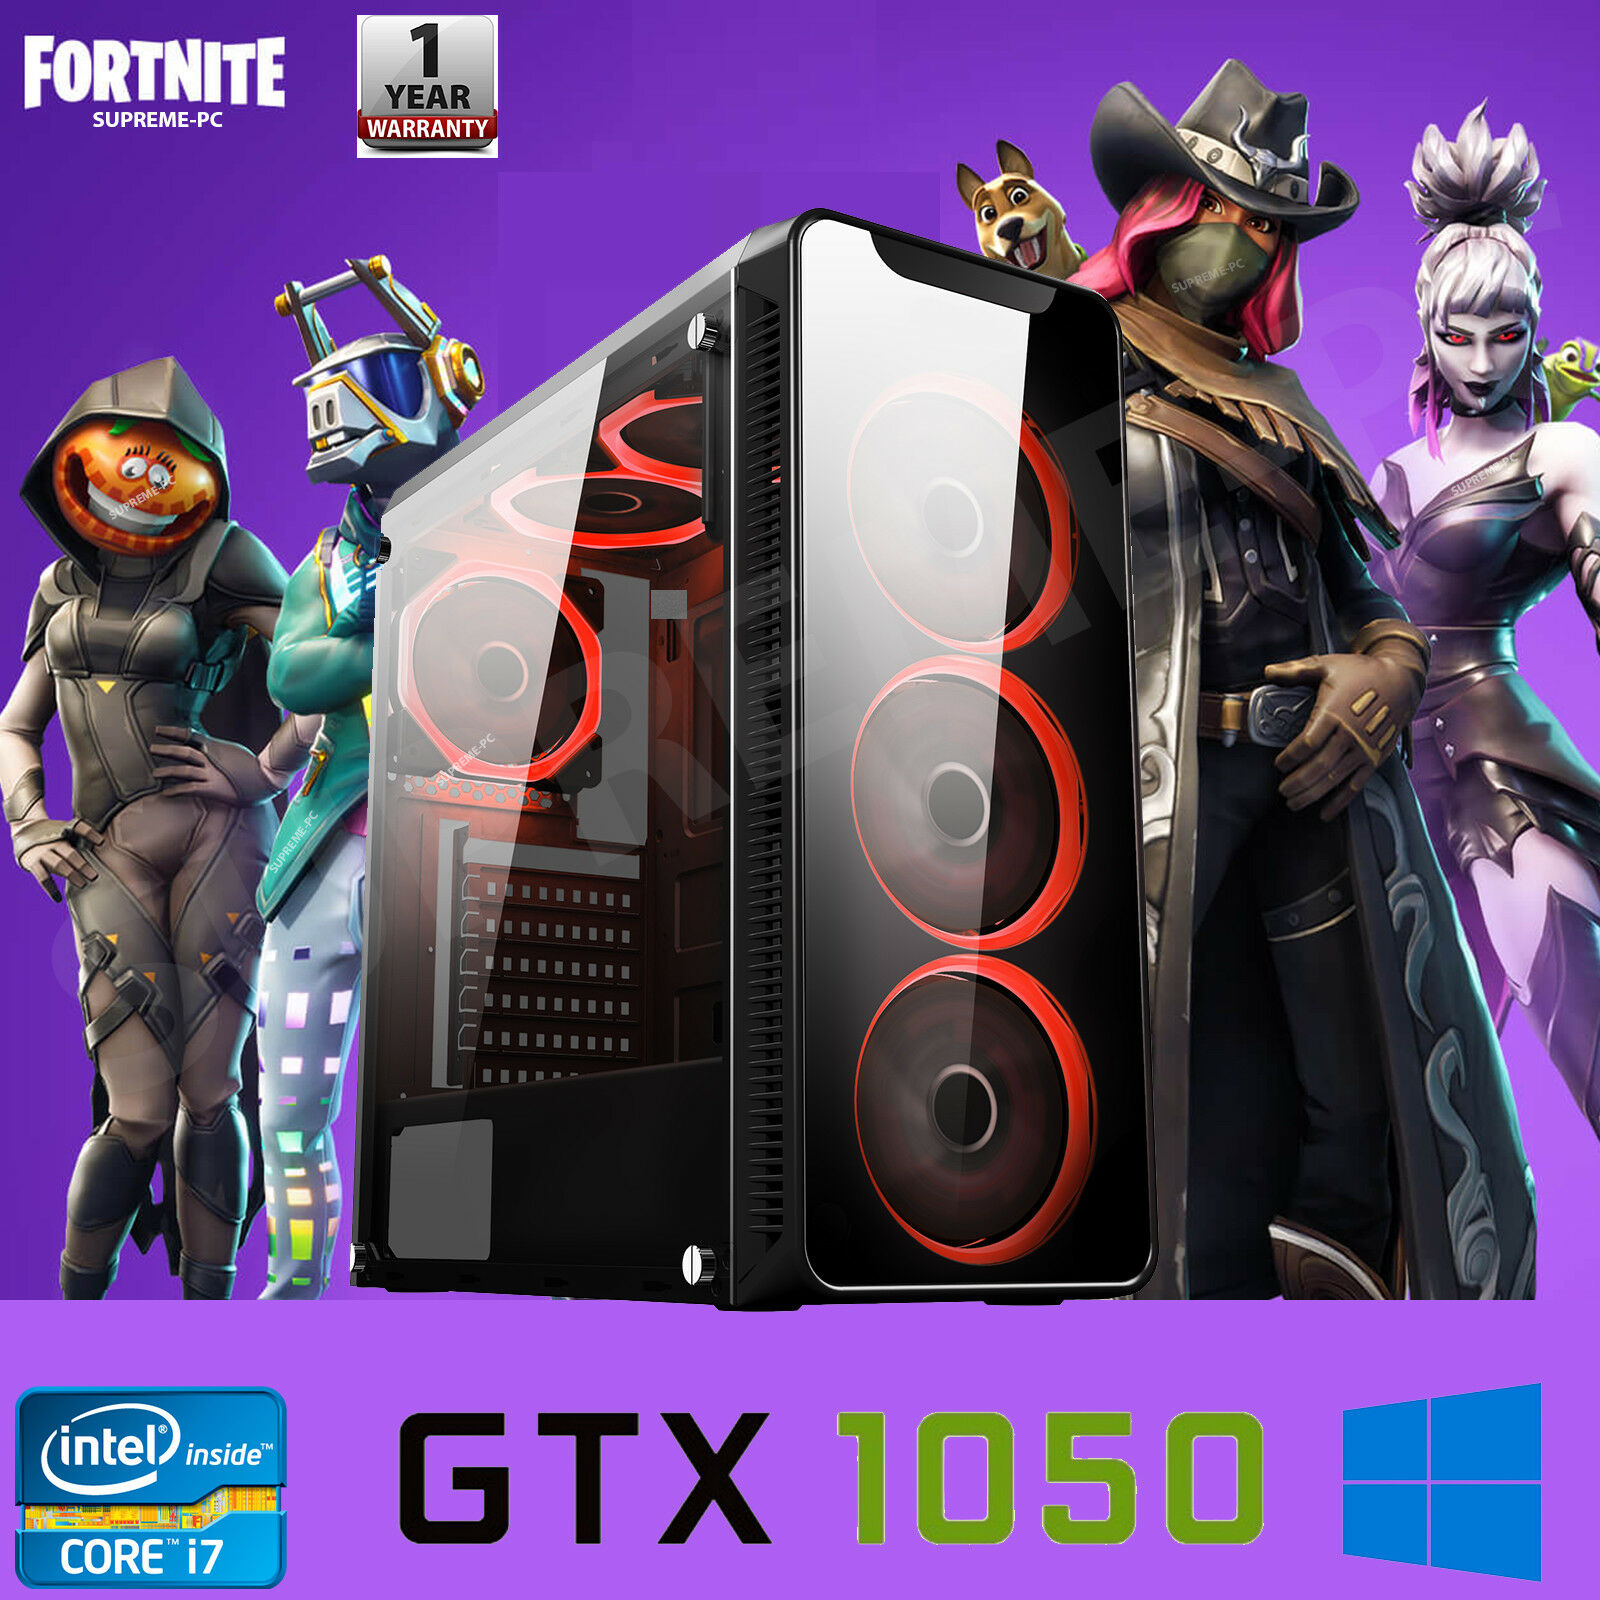 Computer Games - FAST Quad Core i7 GTX 1050 Ti Gaming PC 16GB RAM 2TB Windows 10 Desktop Computer